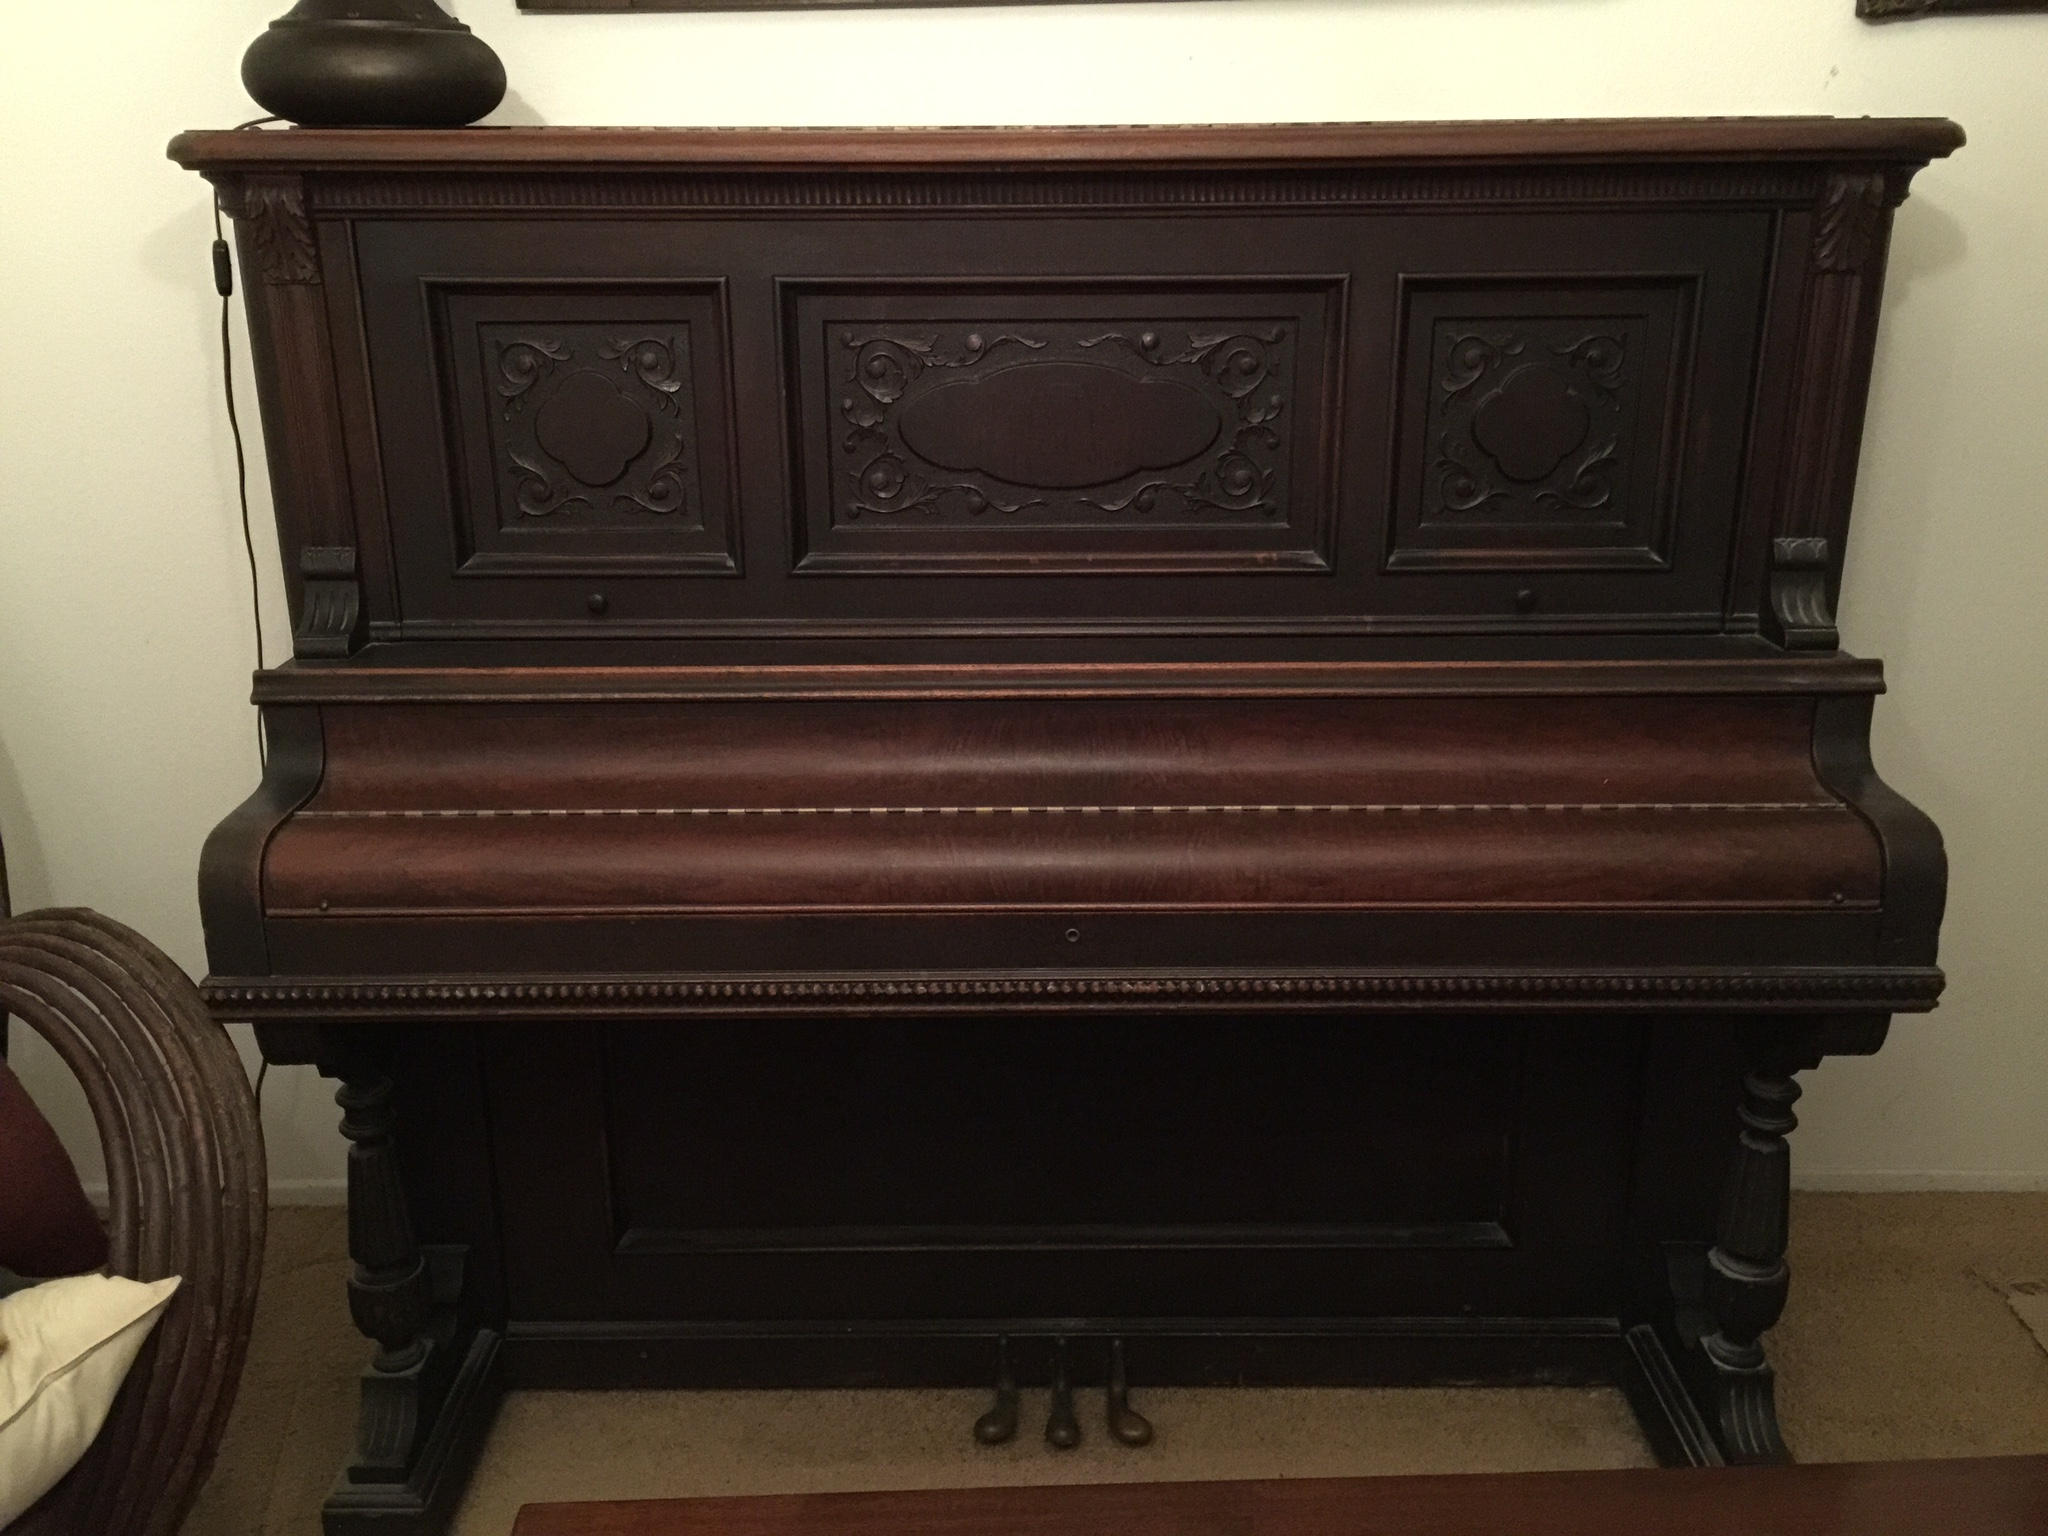 dating your antique piano